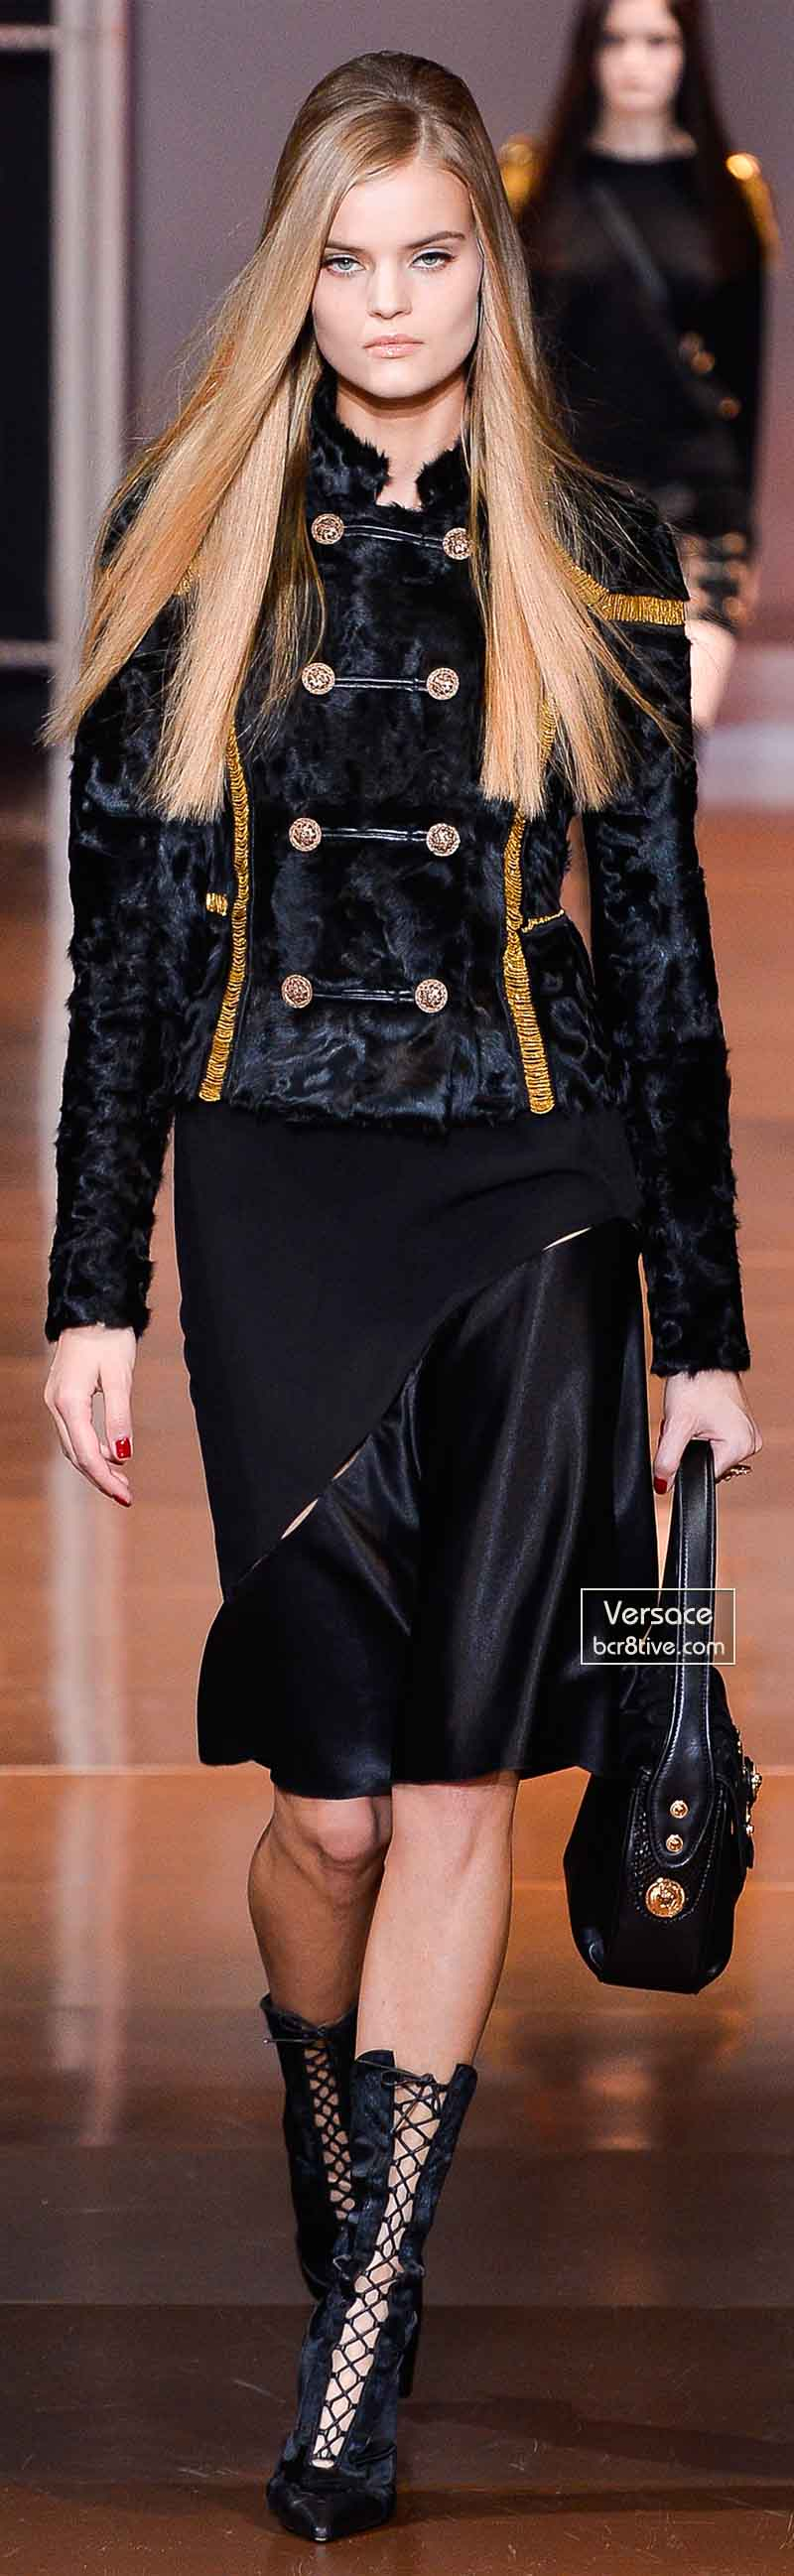 Versace Fall 2014 - Kate Grigorieva